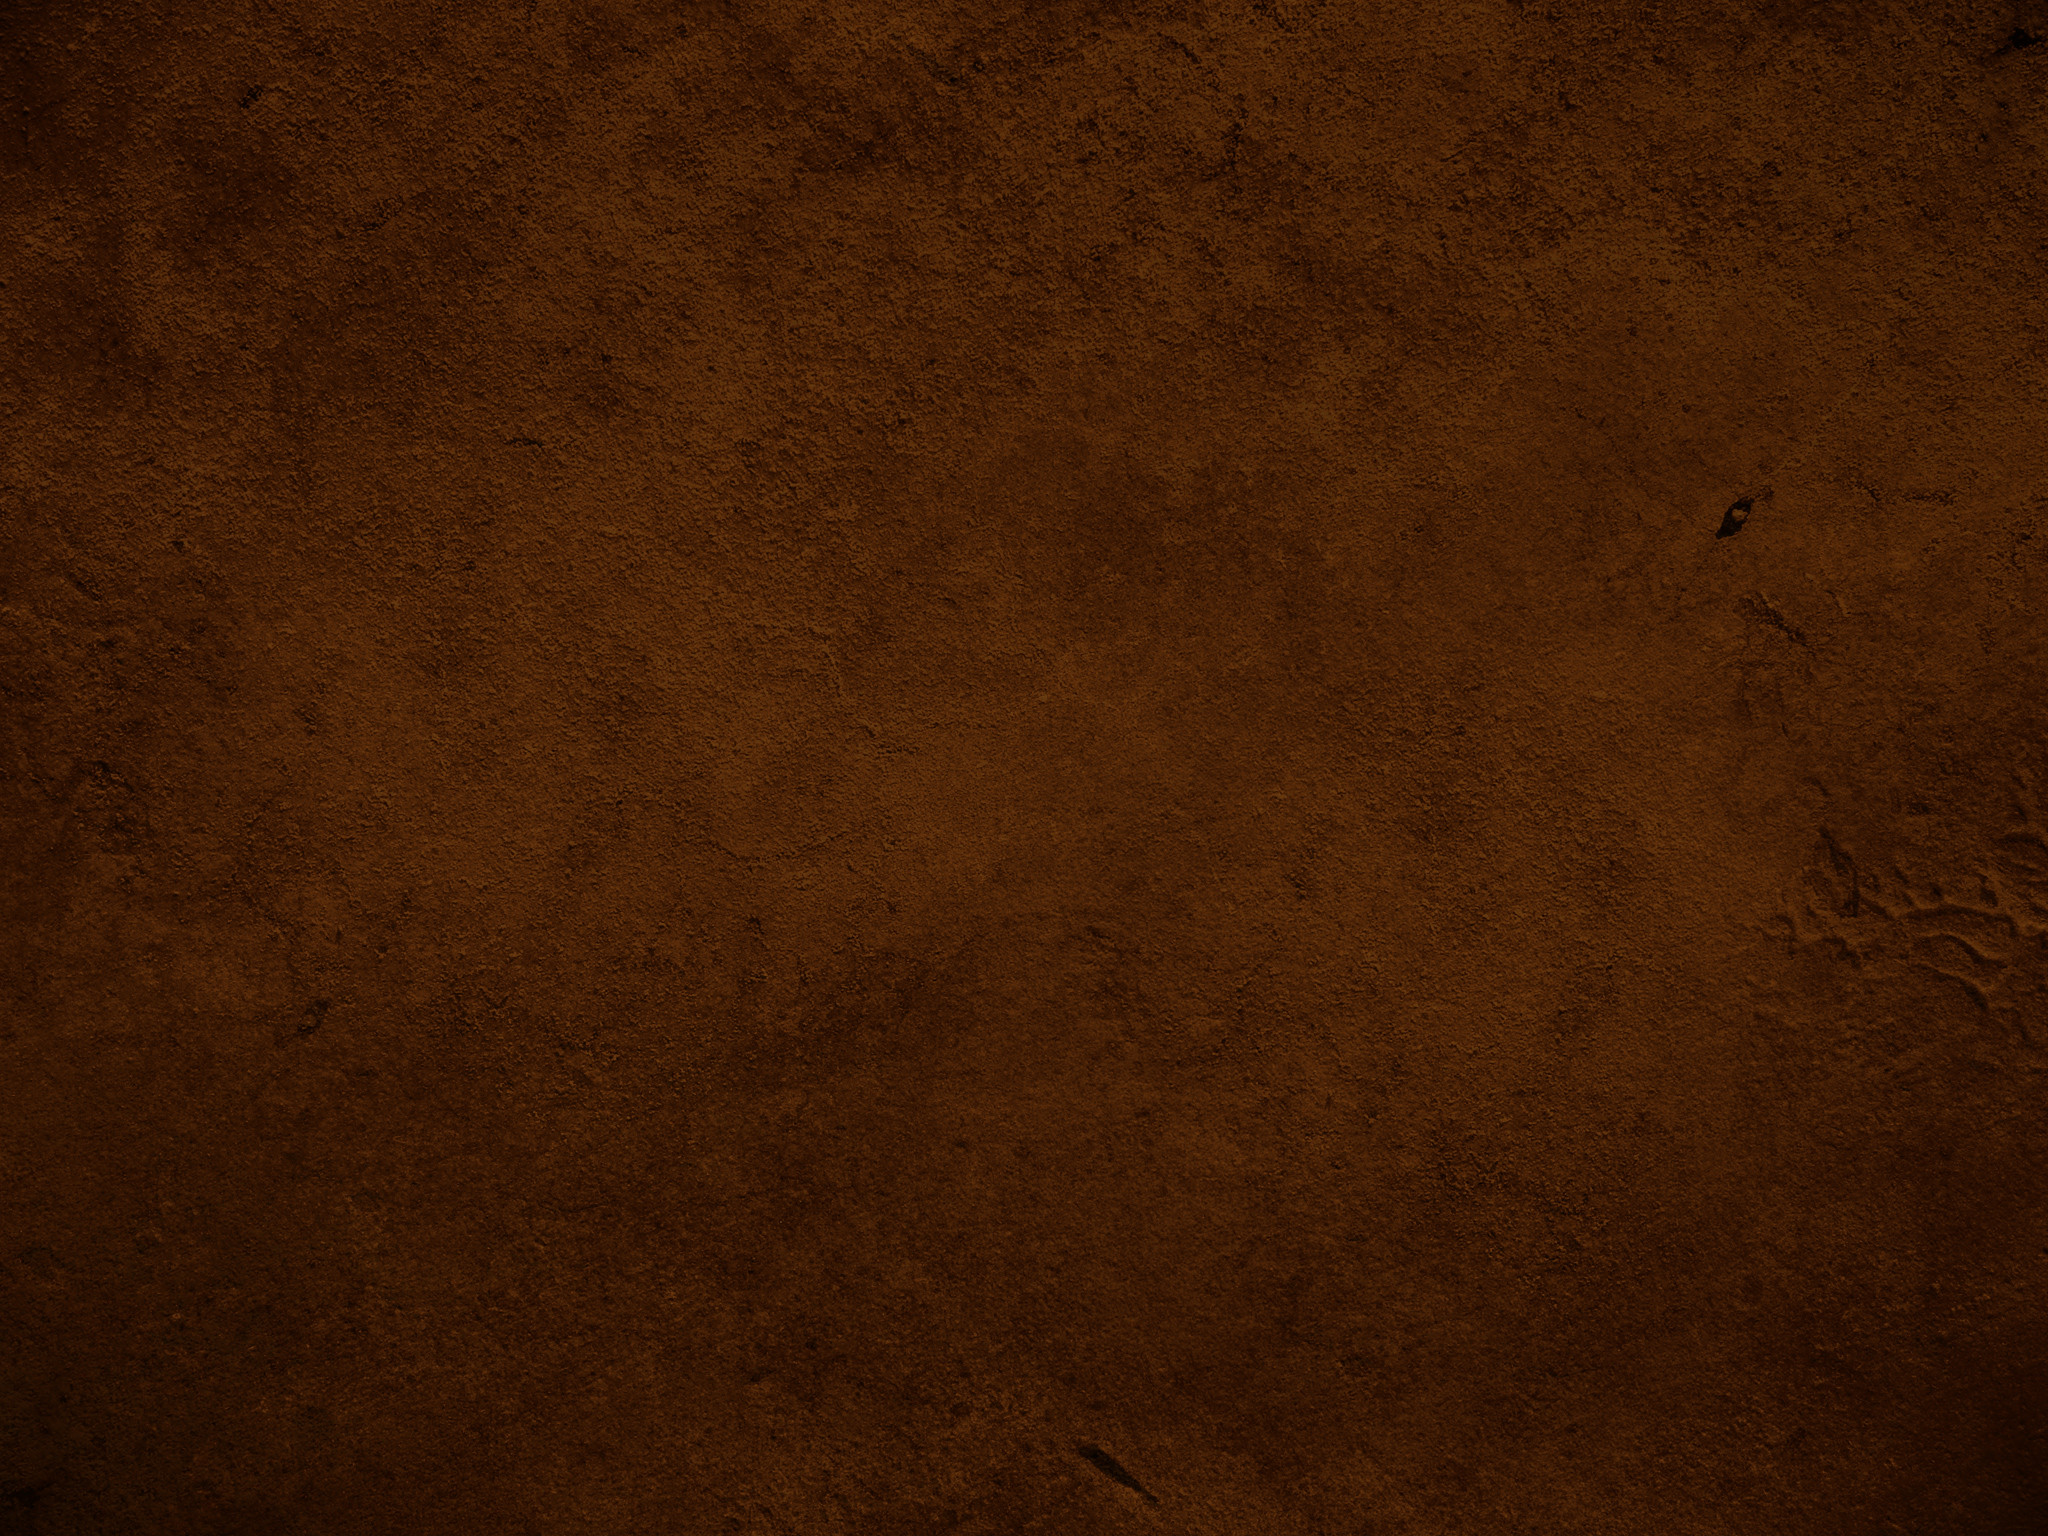 2048x1536 Brown Backgrounds